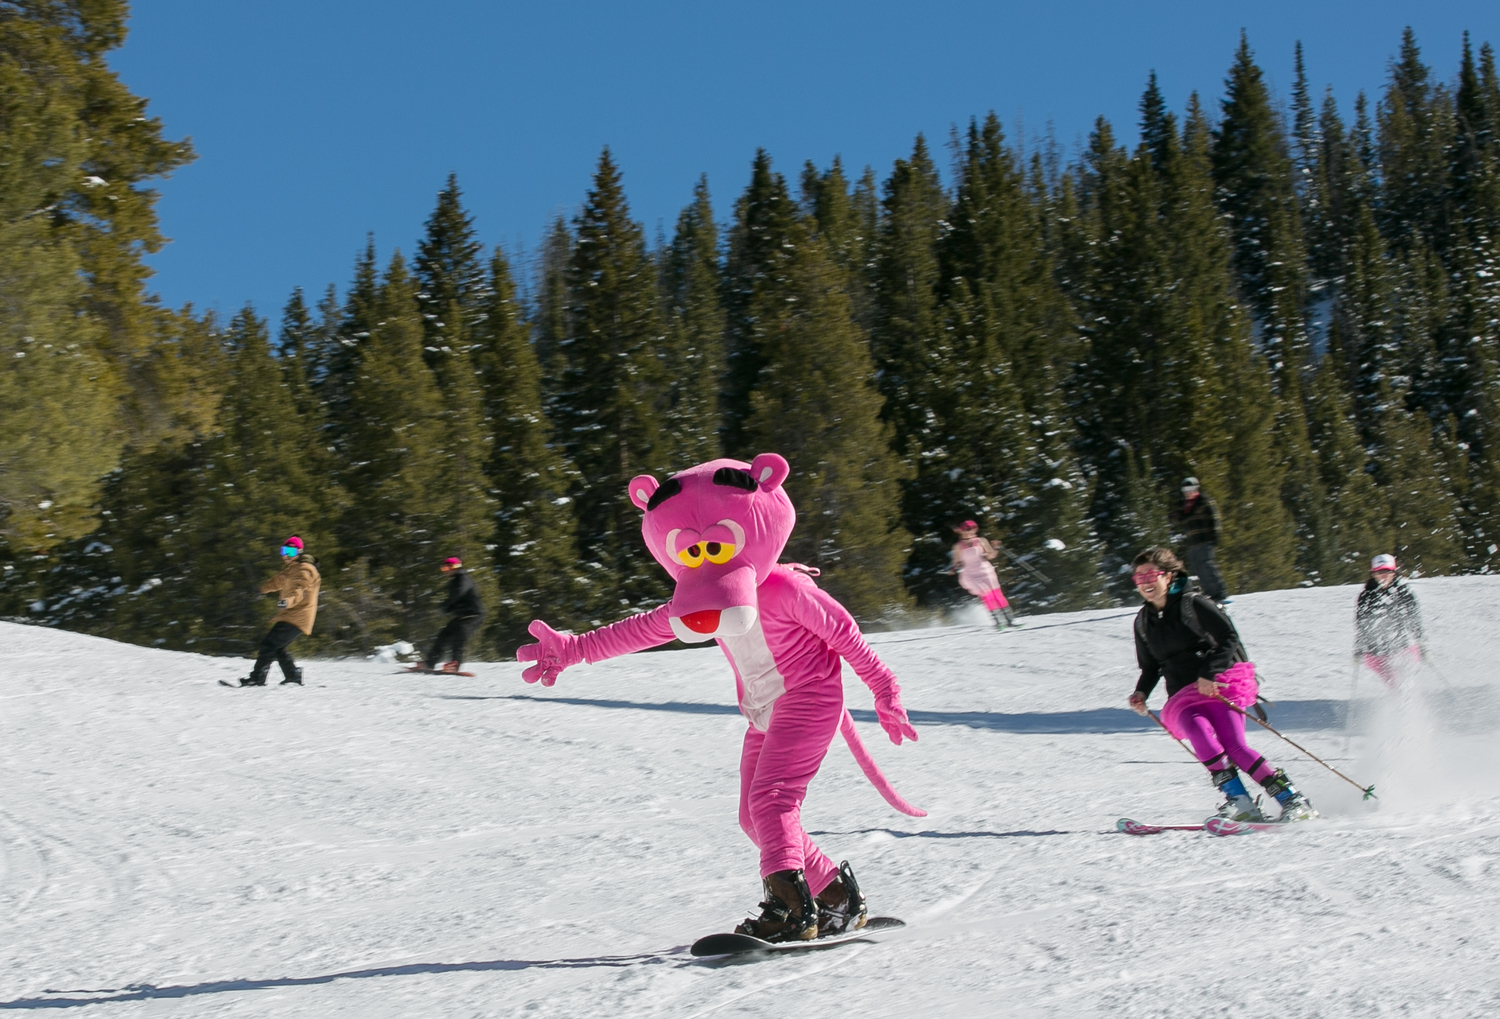 Pink Vail Raises Money For The Shaw Regional Cancer Center